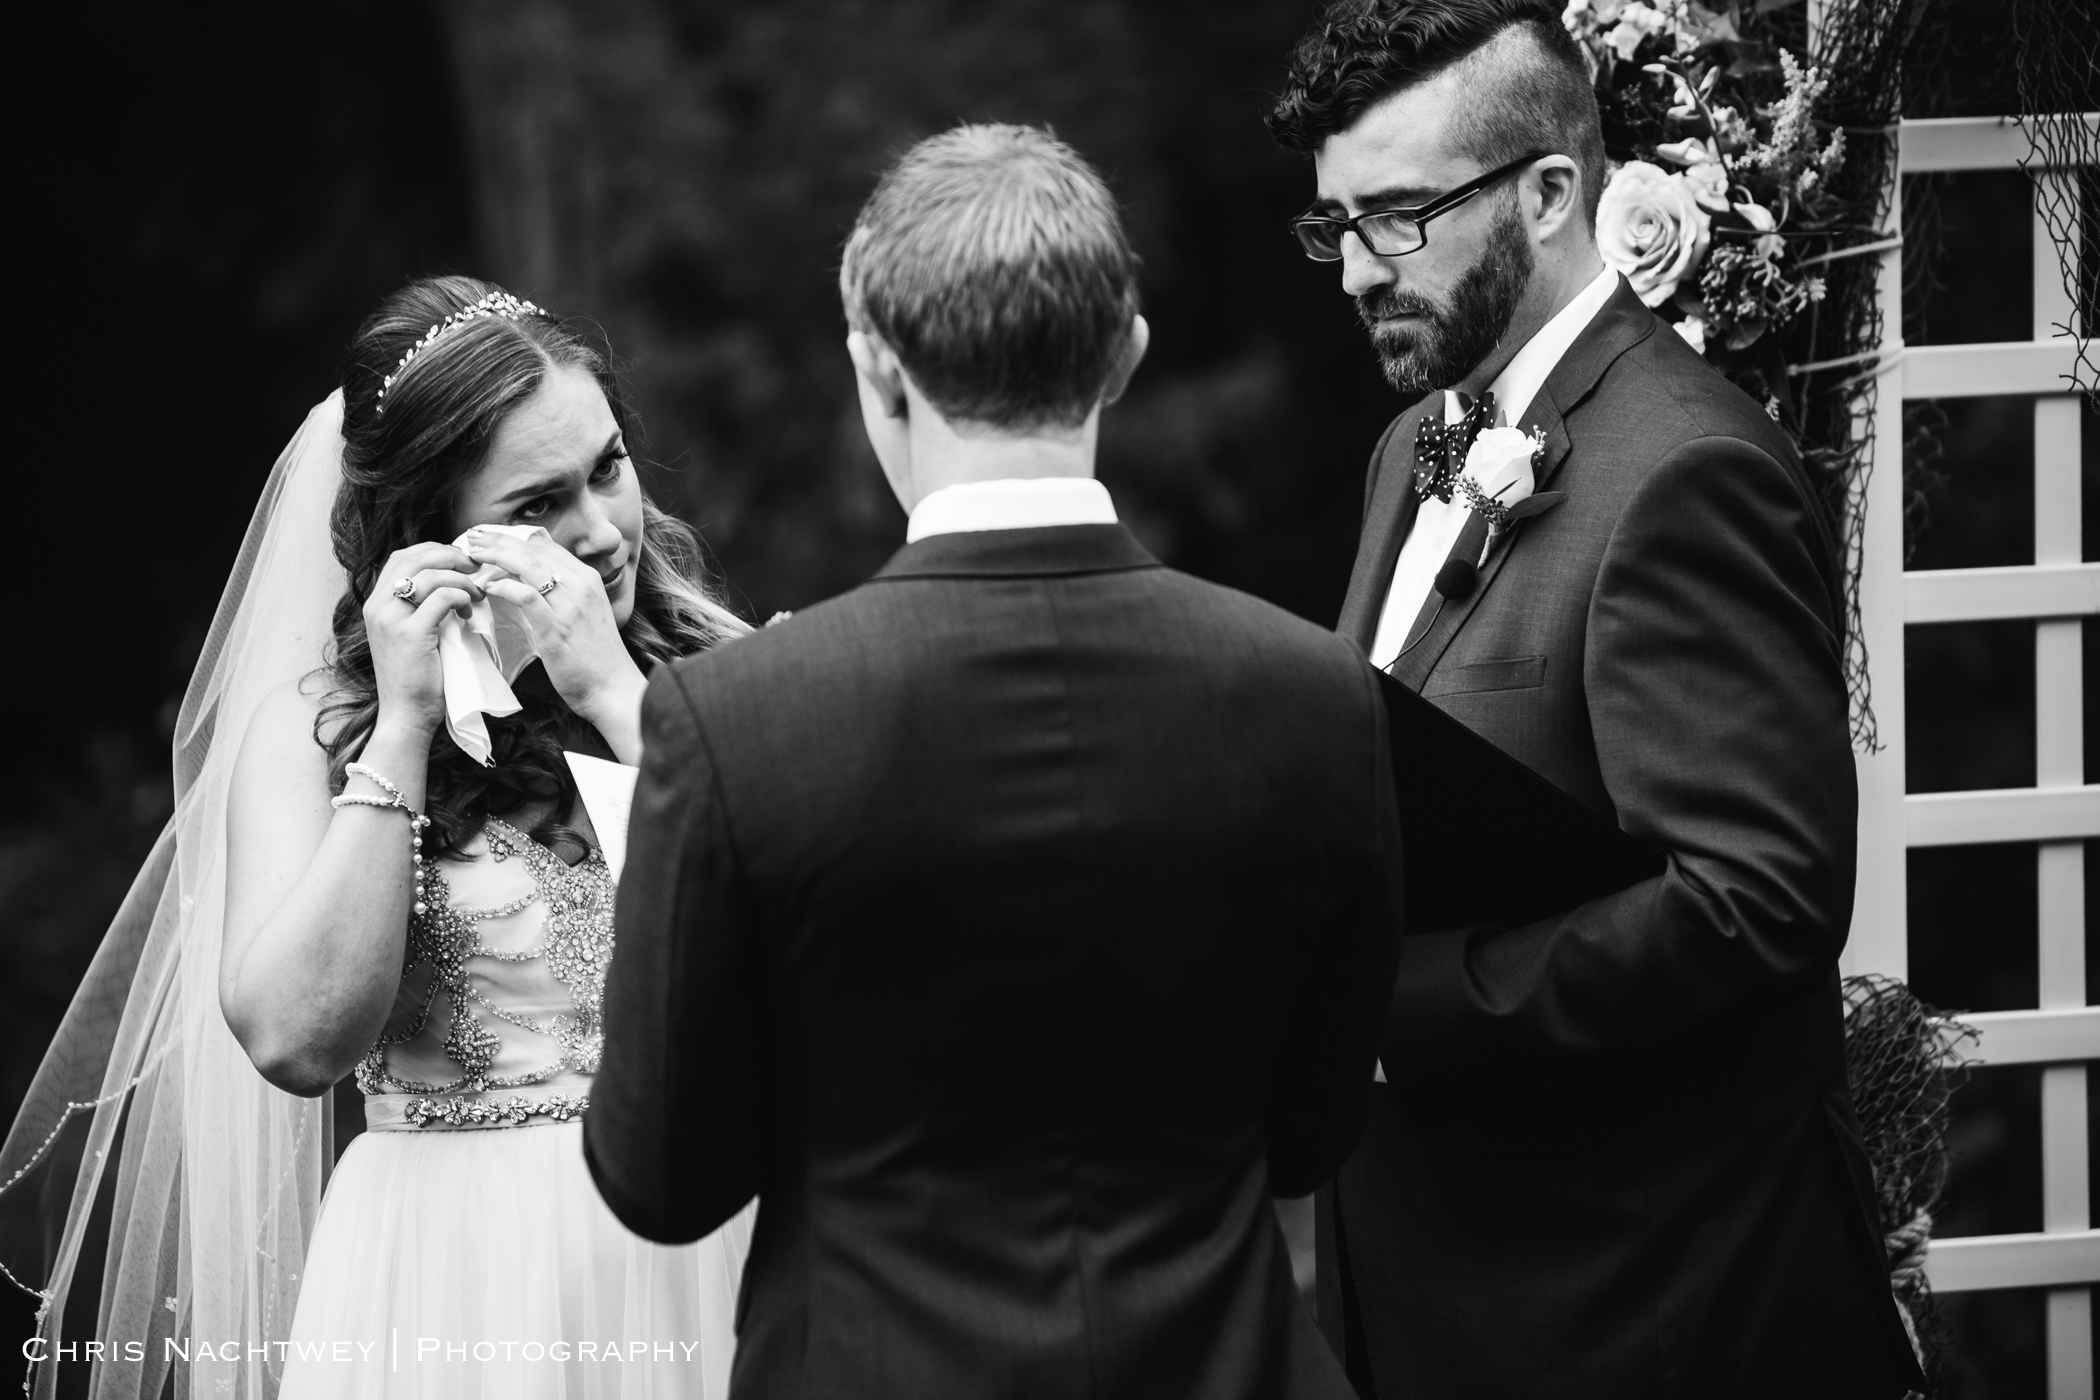 inn-at-mystic-wedding-photos-chris-nachtwey-photography-2018-14.jpg